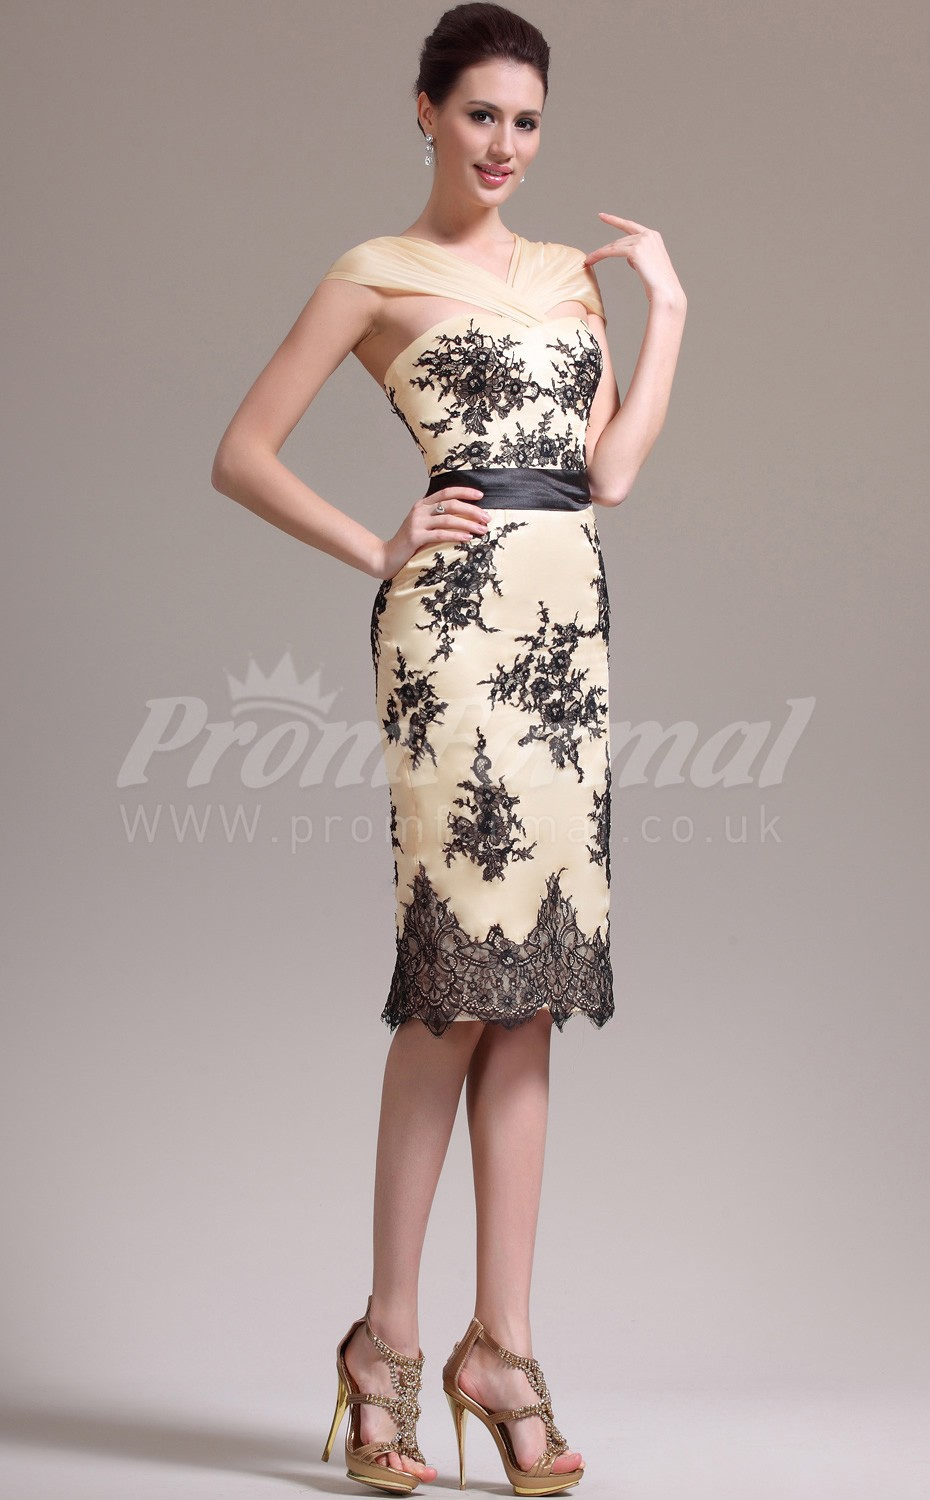 Pearl Pink Lace,Chiffon Sheath Sweetheart Knee-length Cocktail ...